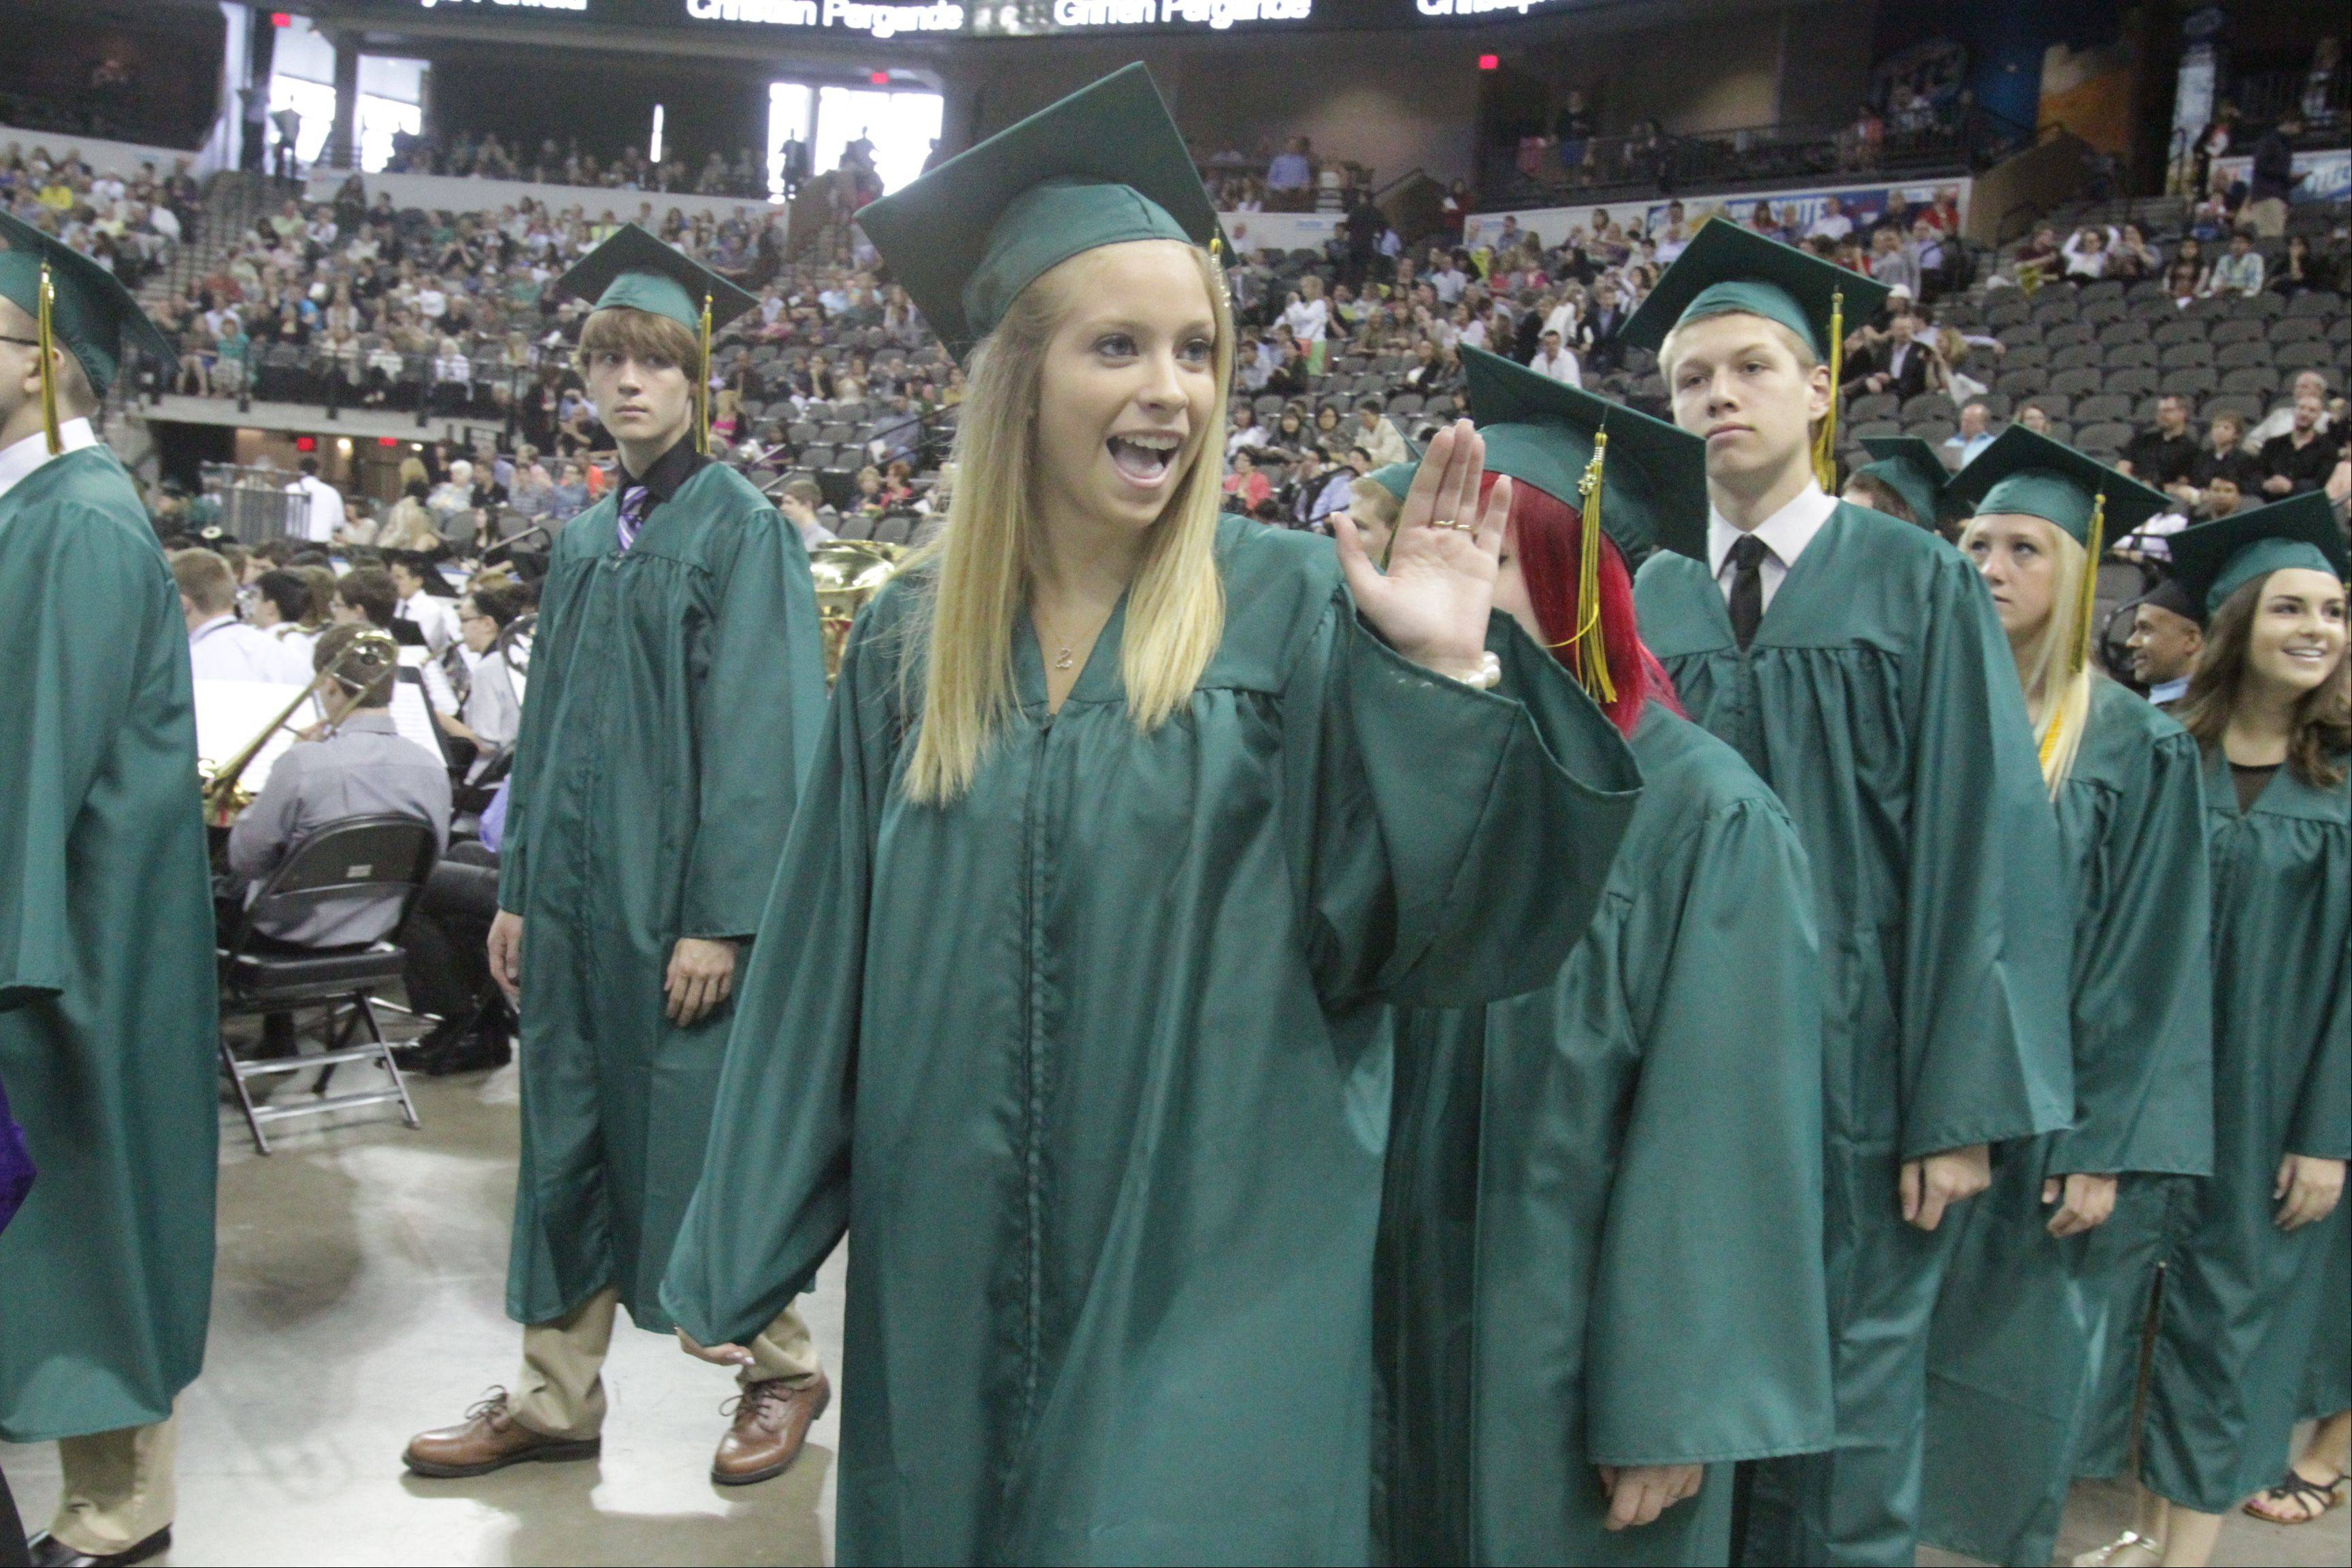 Images from the Fremd High School graduation on Sunday, June 2, at the Sears Centre in Hoffman Estates